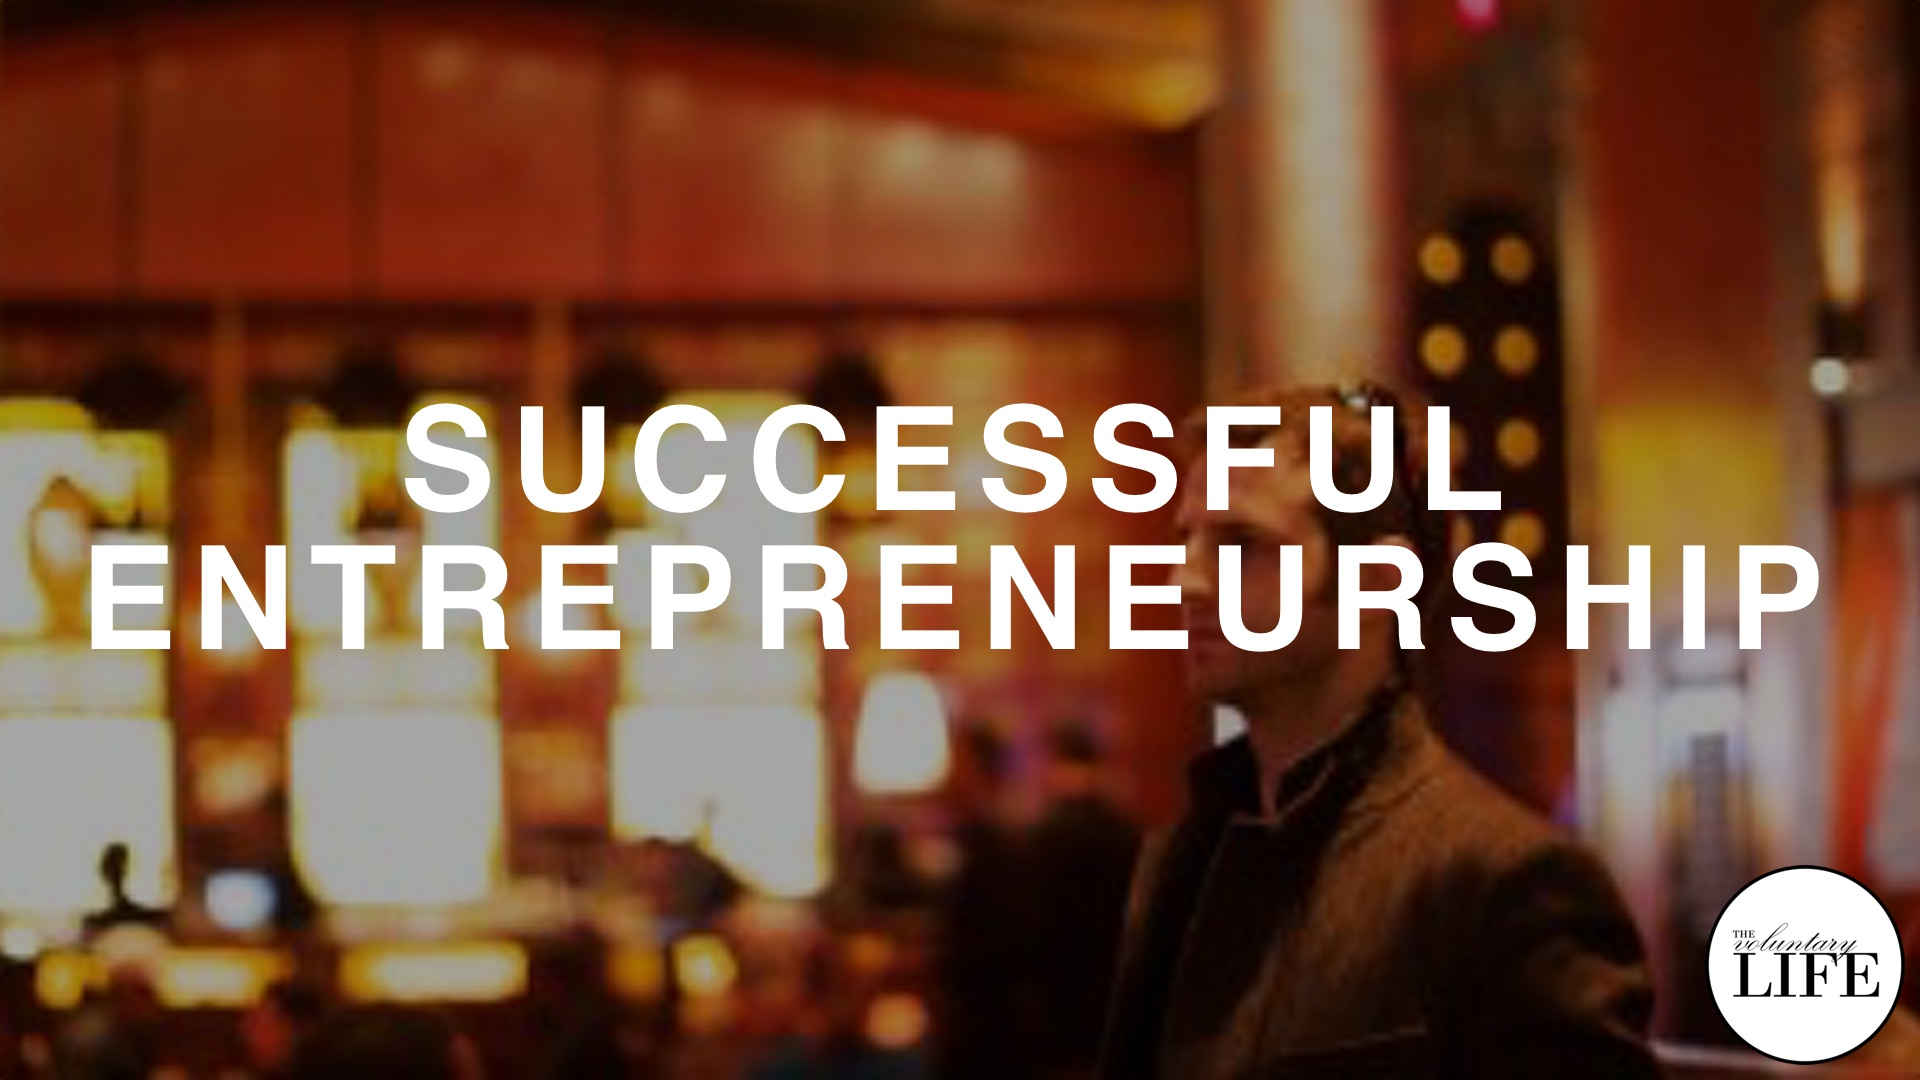 29 Successful Entrepreneurship: An Interview With Judd Weiss